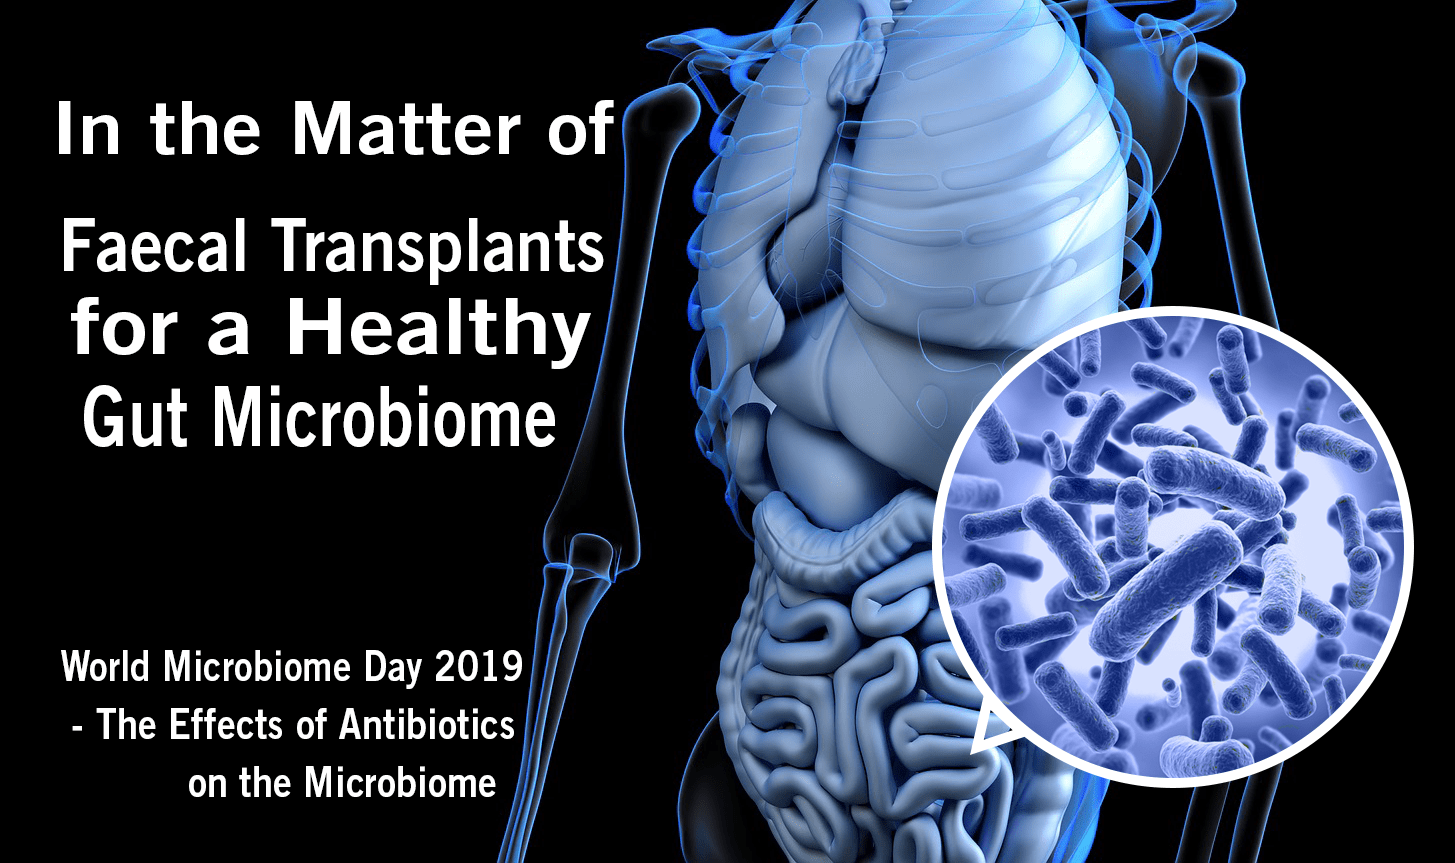 World Microbiome Day 2019 – In the Matter of Faecal Transplants for a Healthy Microbiome